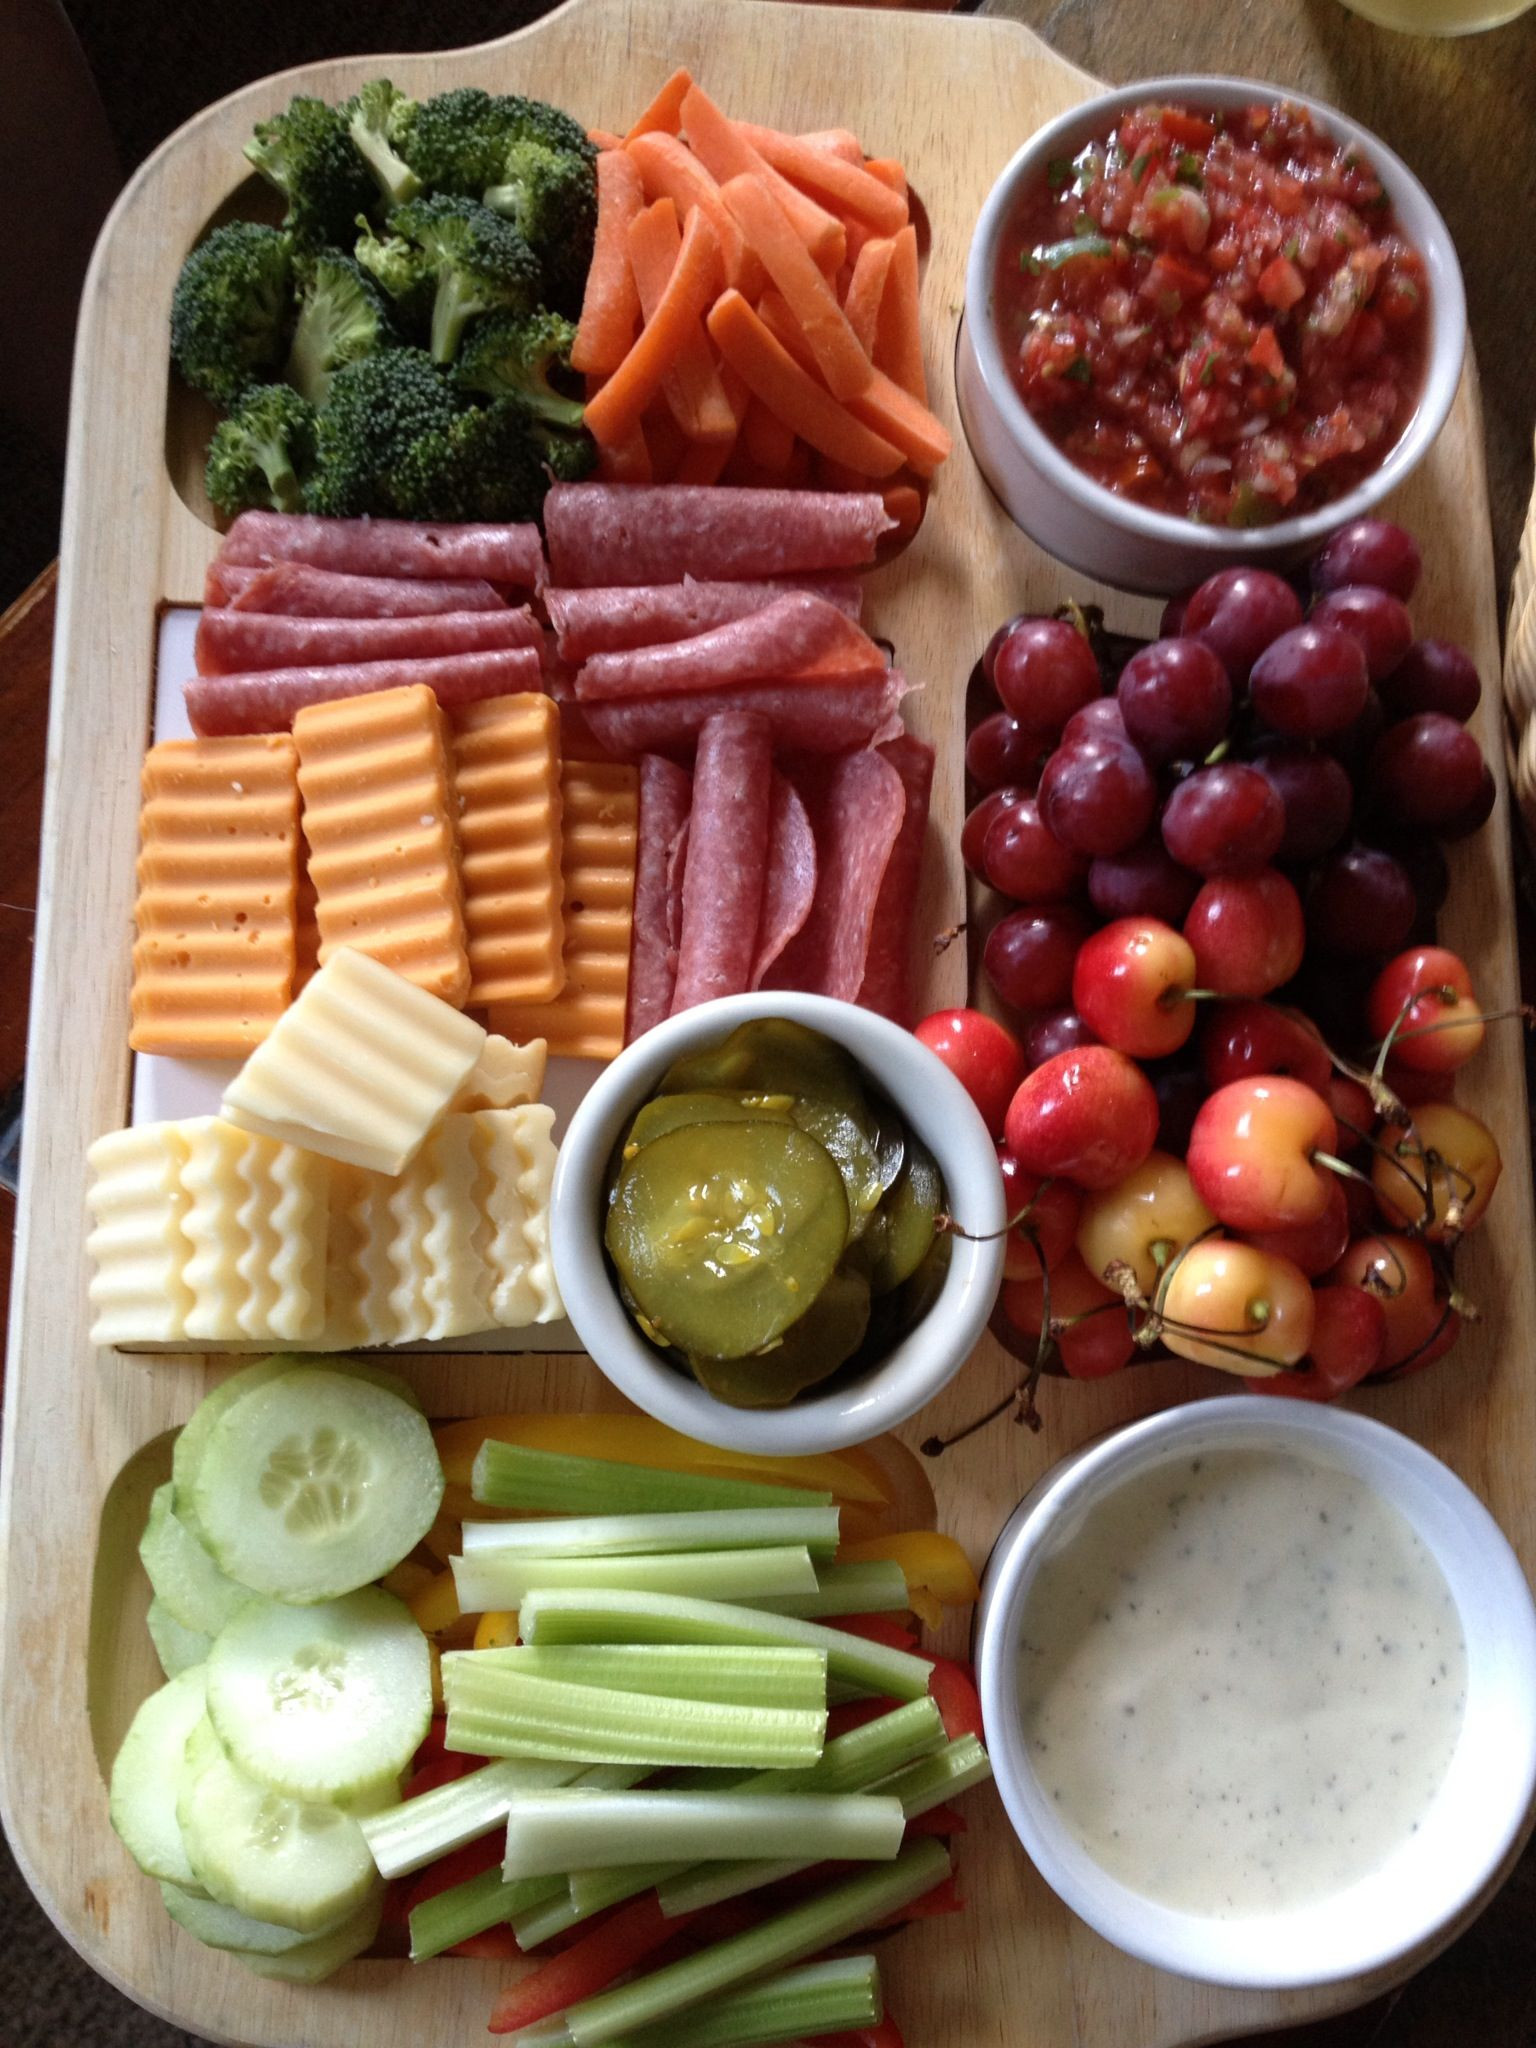 Healthy Snacks At Home  At home movie snacks with a glass of wine